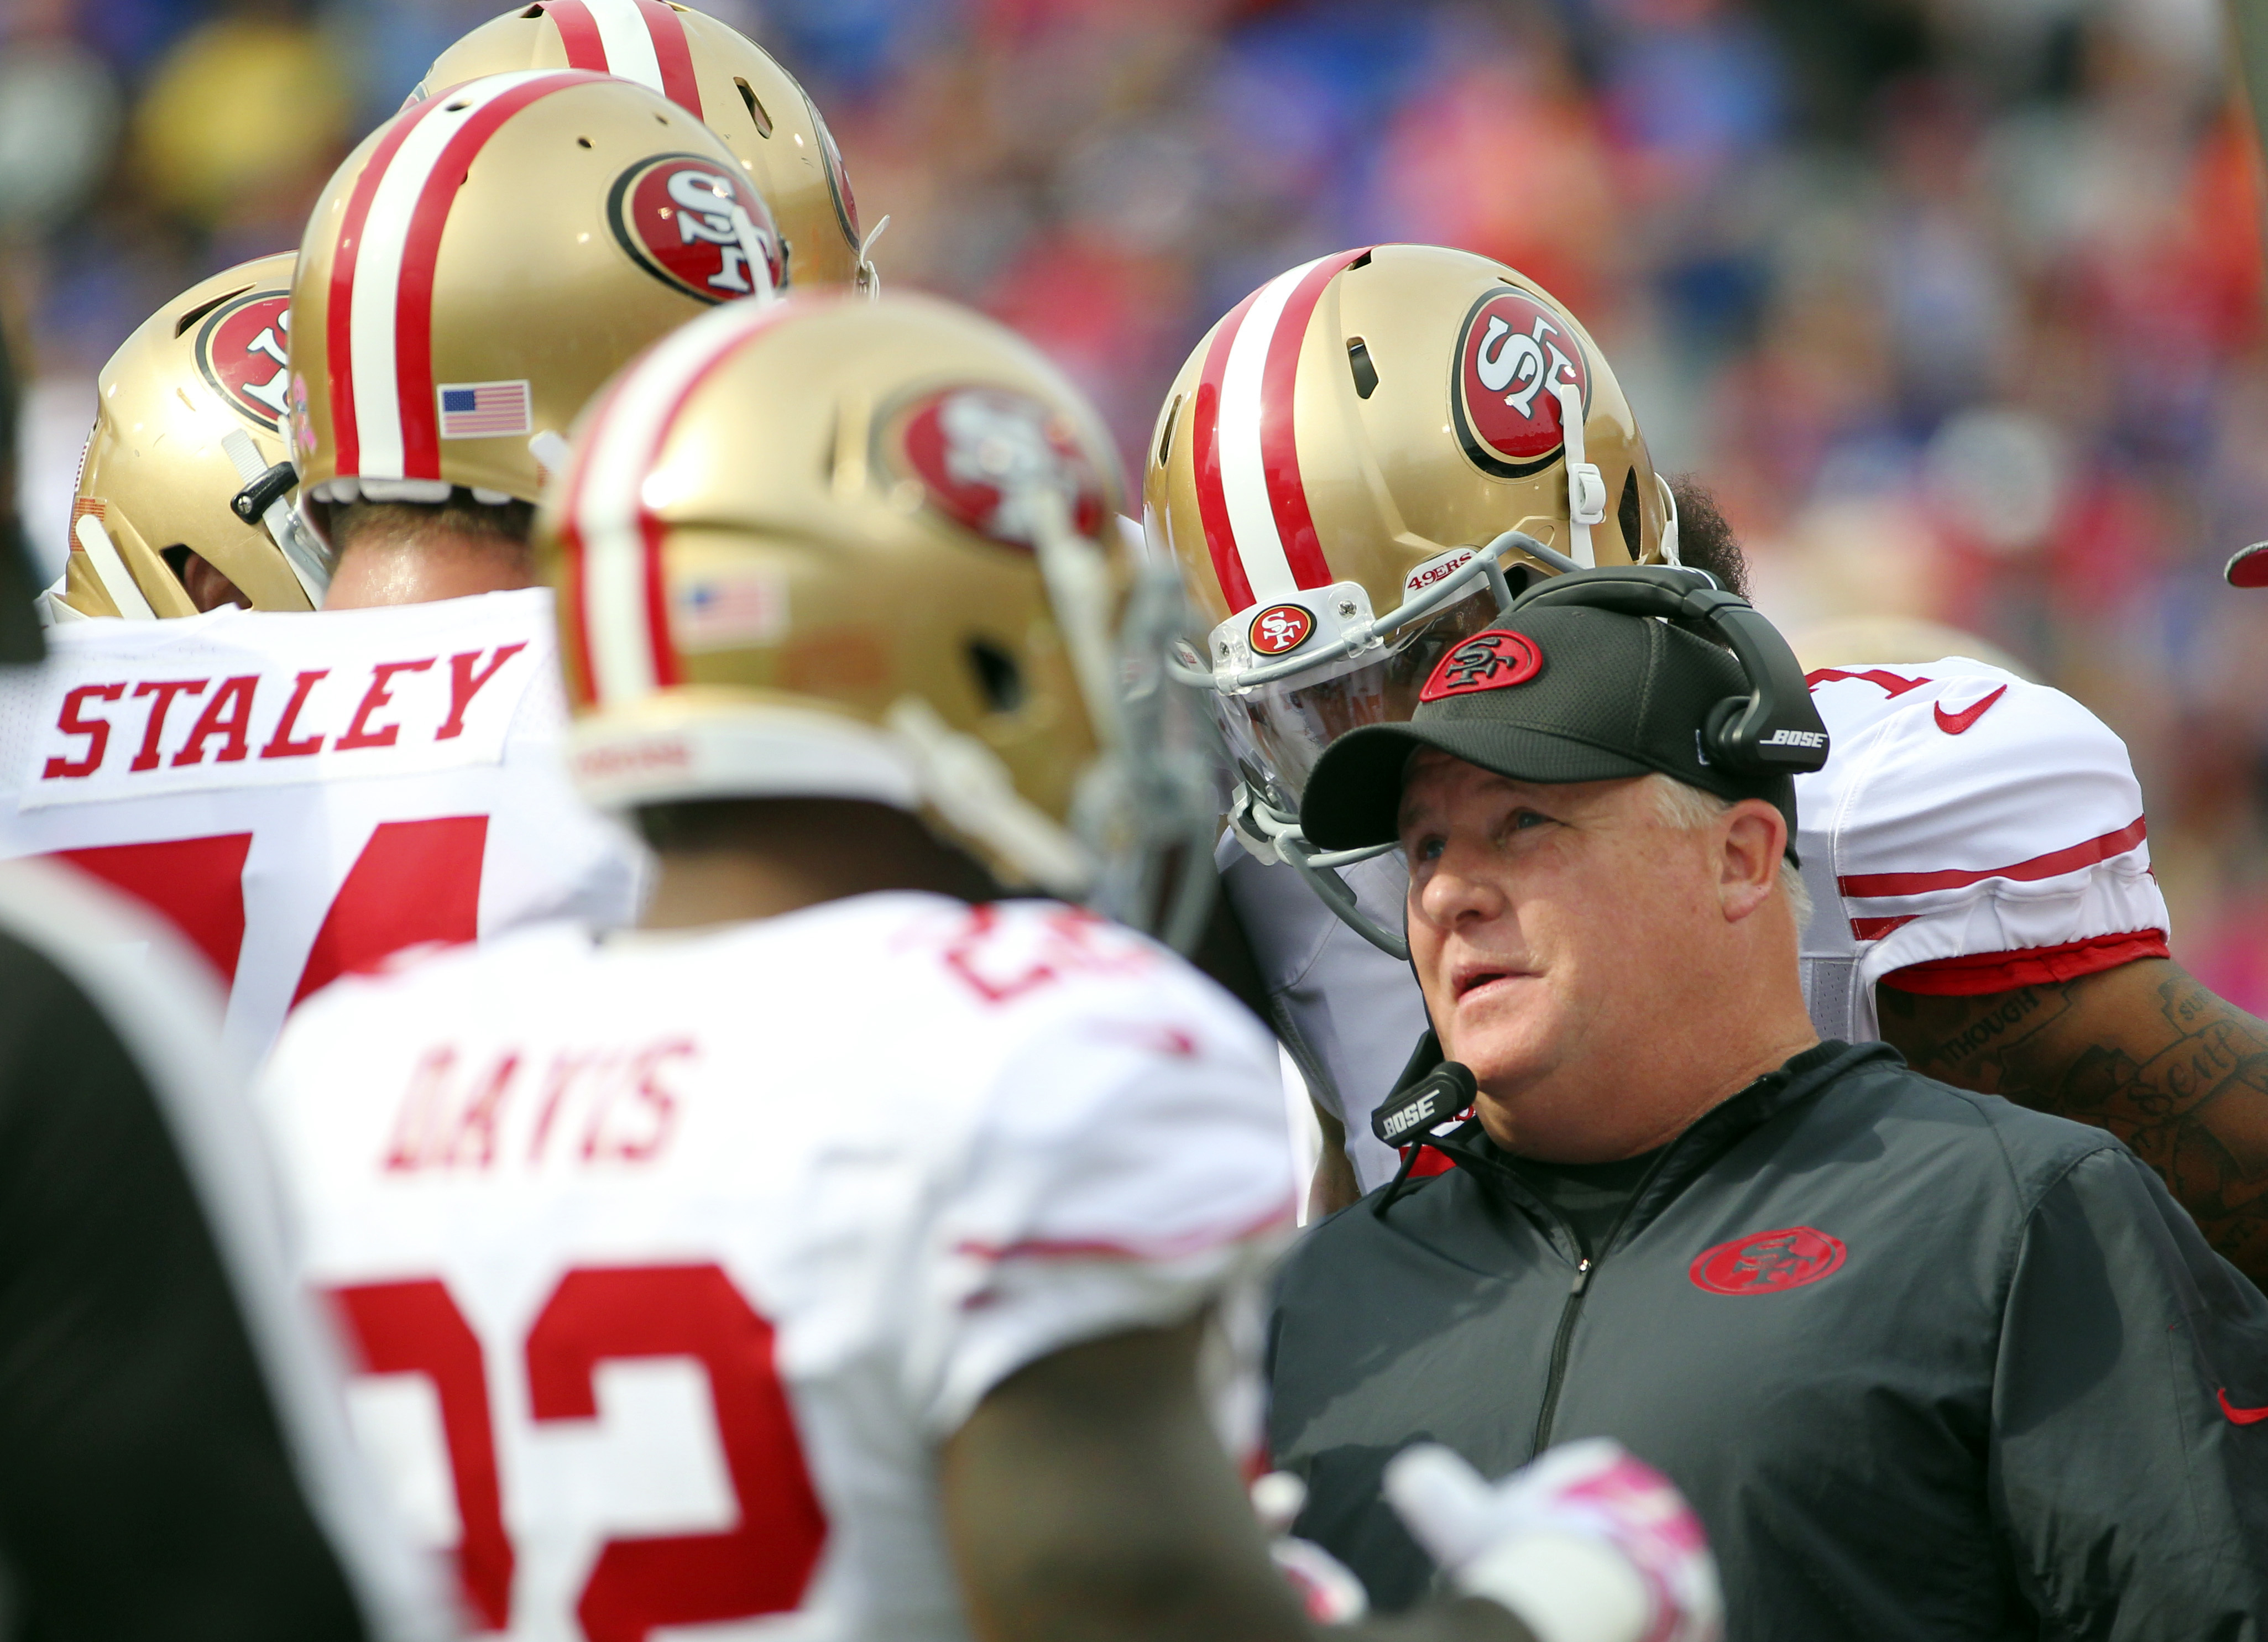 FILE - In a Sunday, Oct. 16, 2016 file photo, San Francisco 49ers head coach Chip Kelly talks to his players during the first half of an NFL football game against the Buffalo Bills, in Orchard Park, N.Y. San Francisco snapped a franchise-record 13-game lo